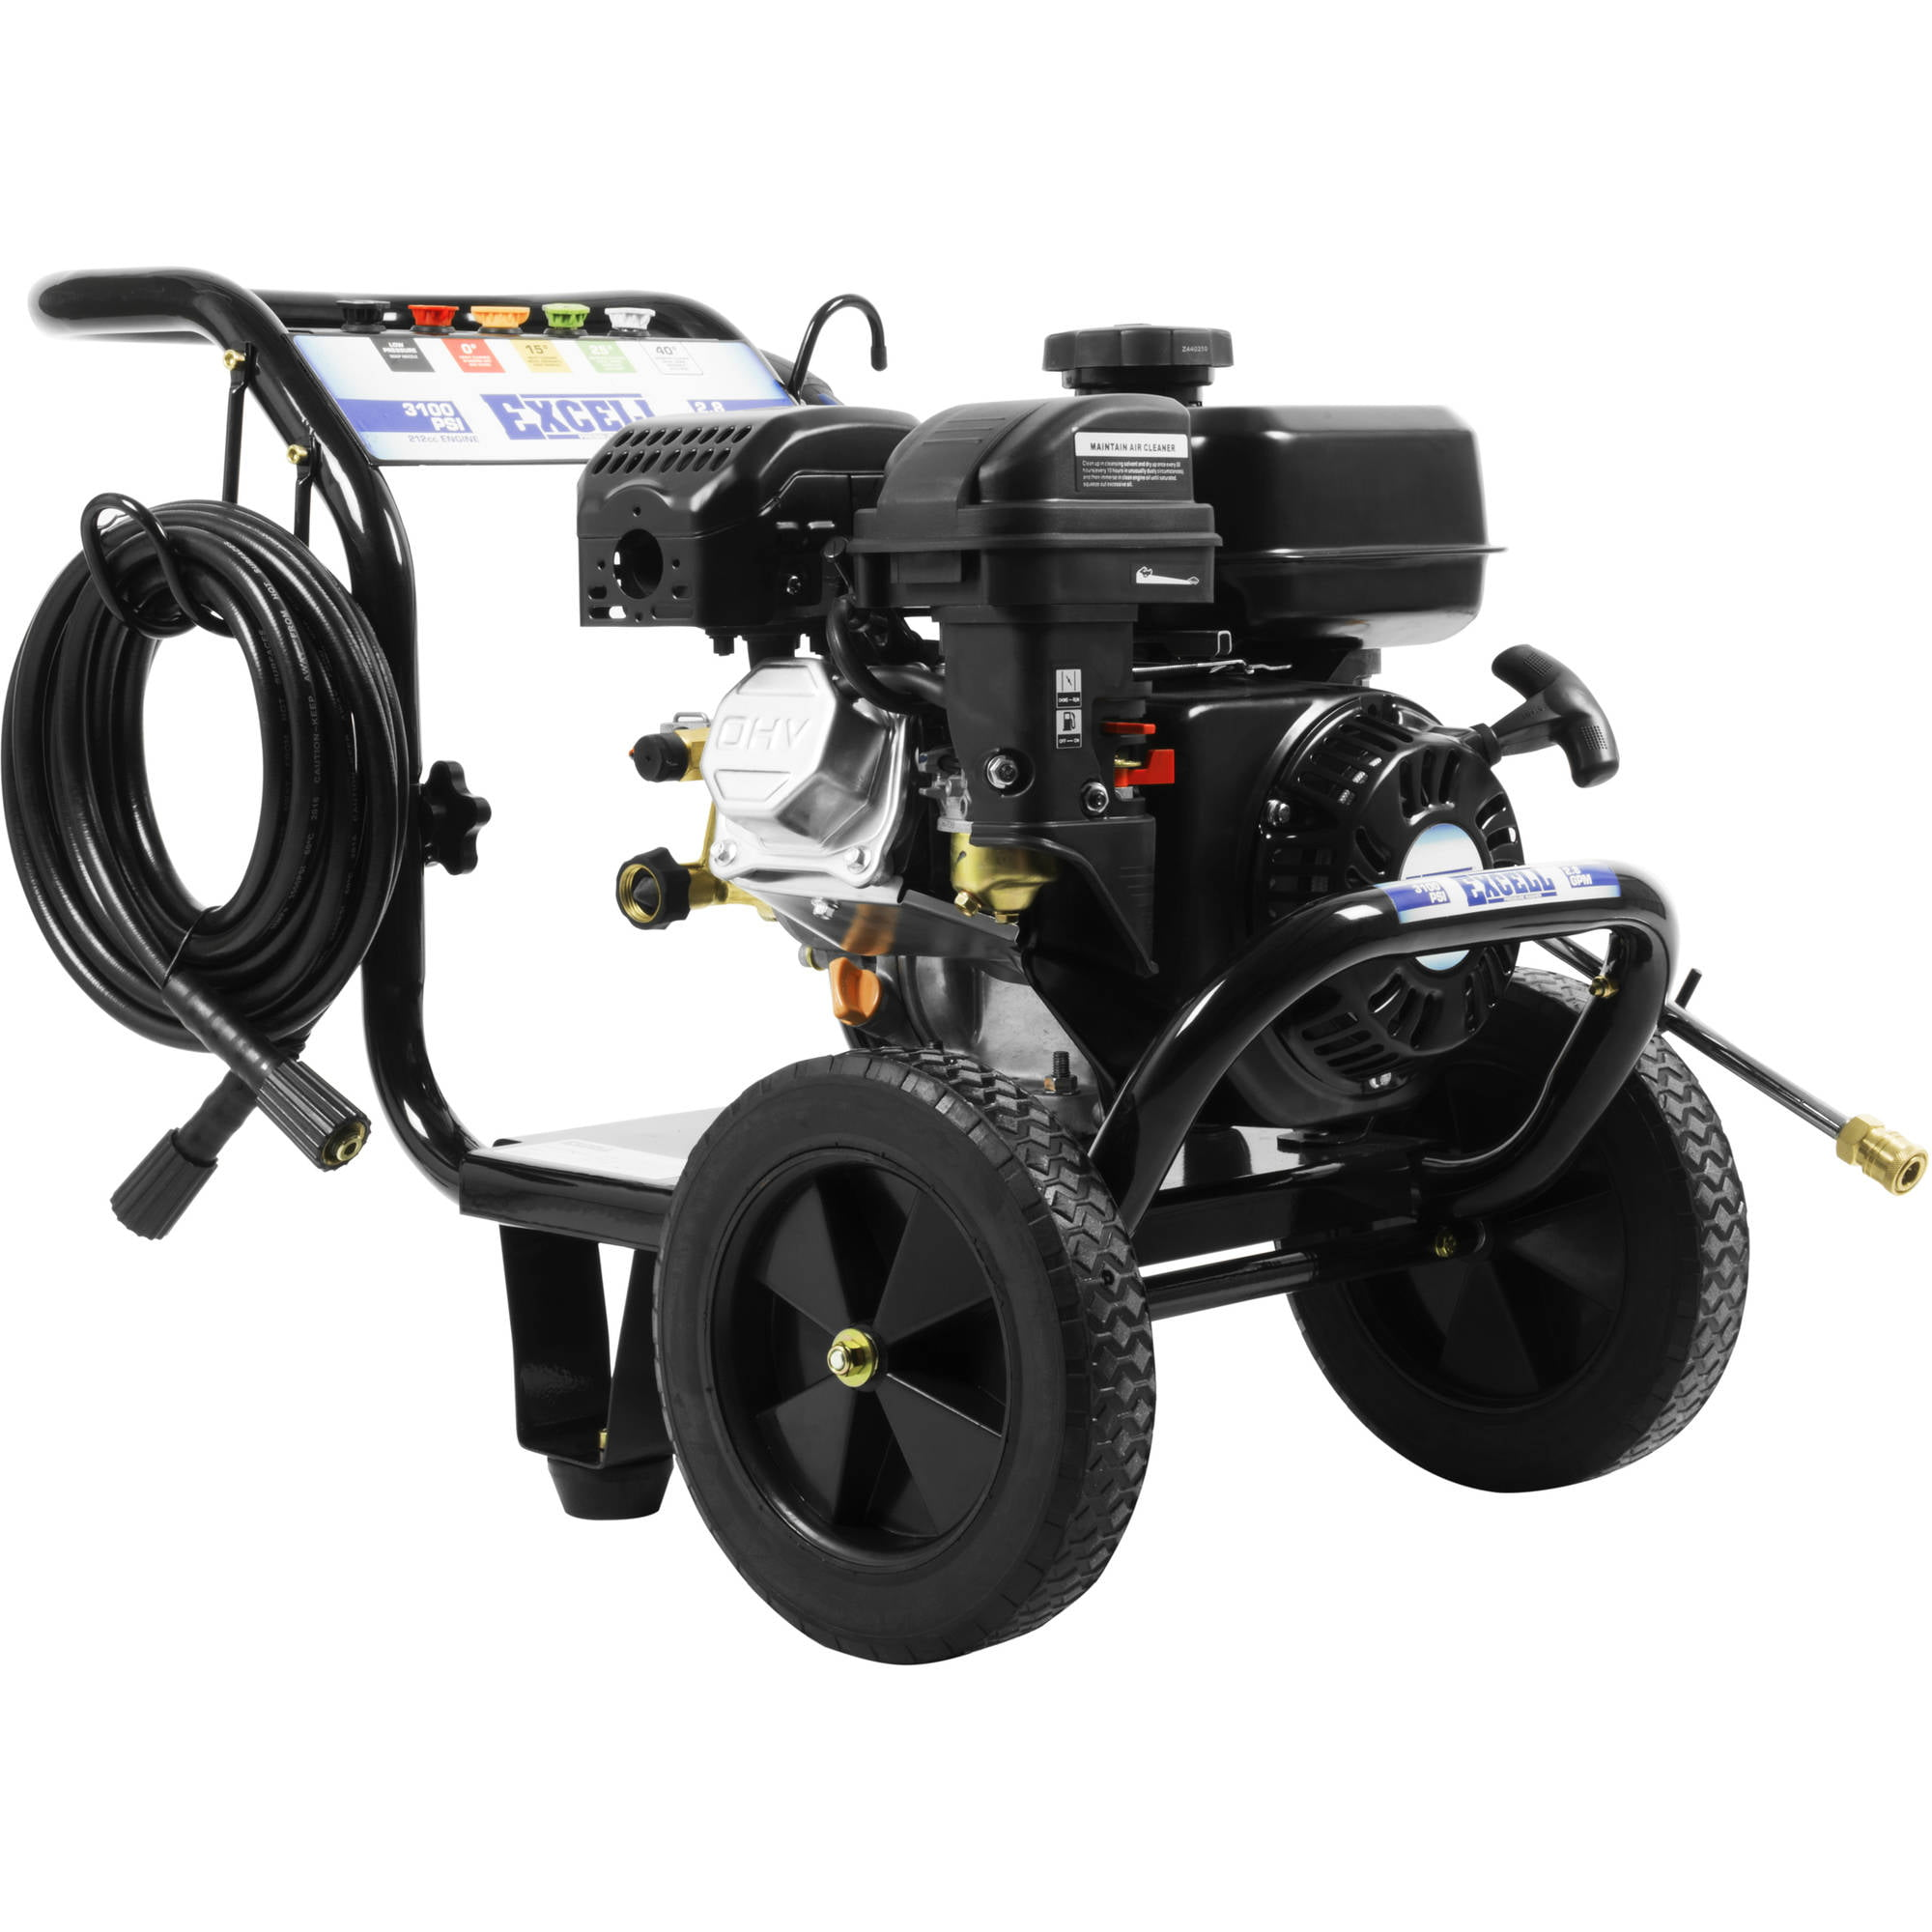 Excell 3100 PSI, 2.8 GPM Pressure Washer by MAT Industires